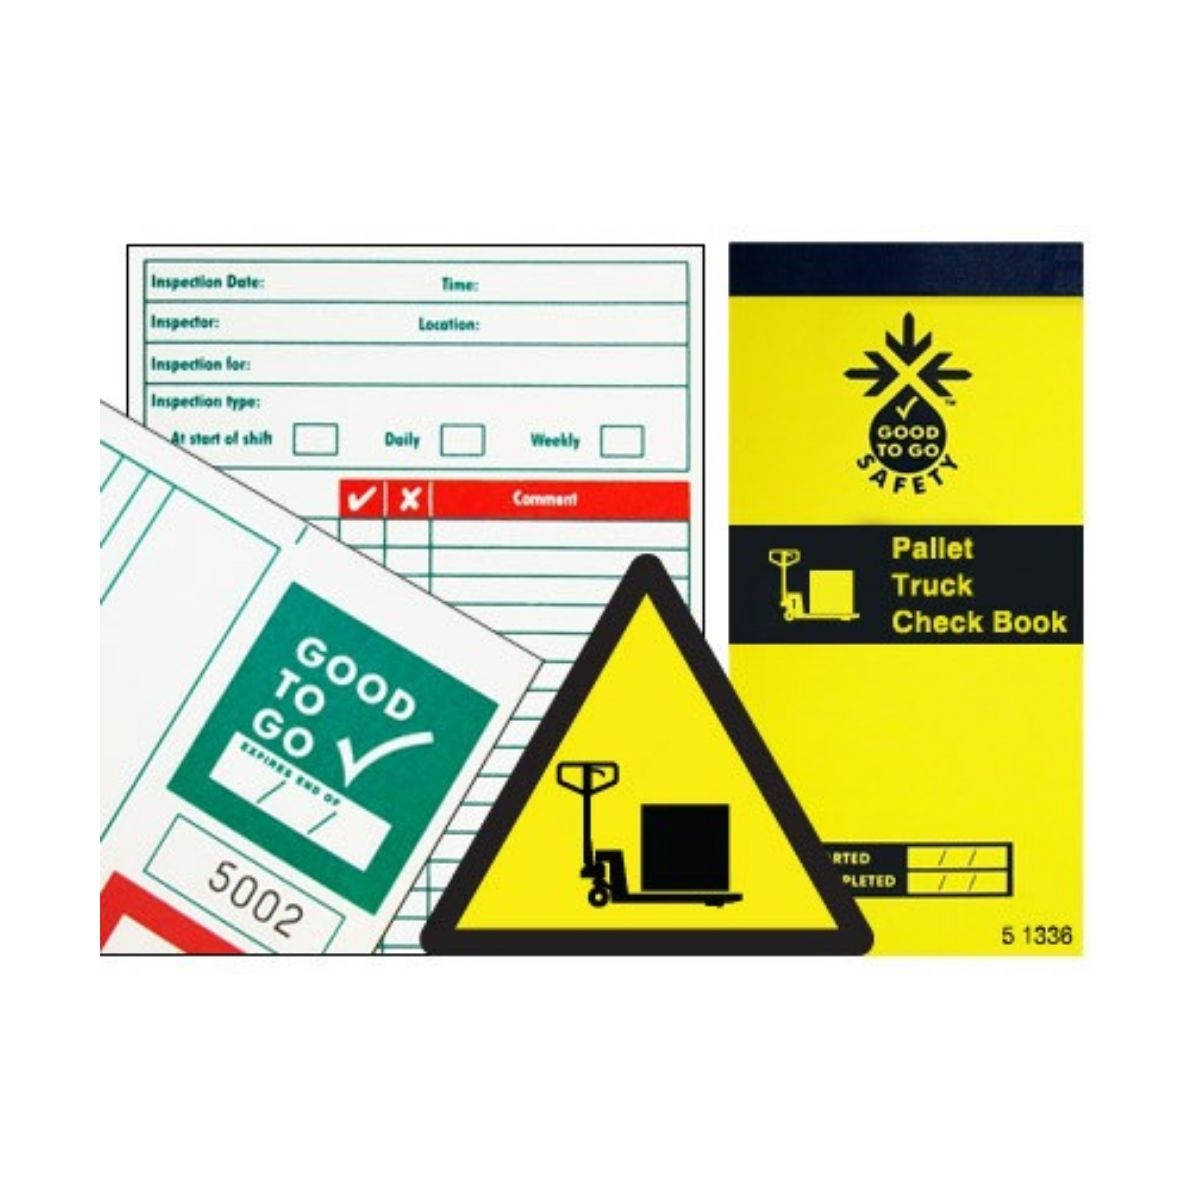 SS51336 Good To Go Safety Pallet Truck Check Book